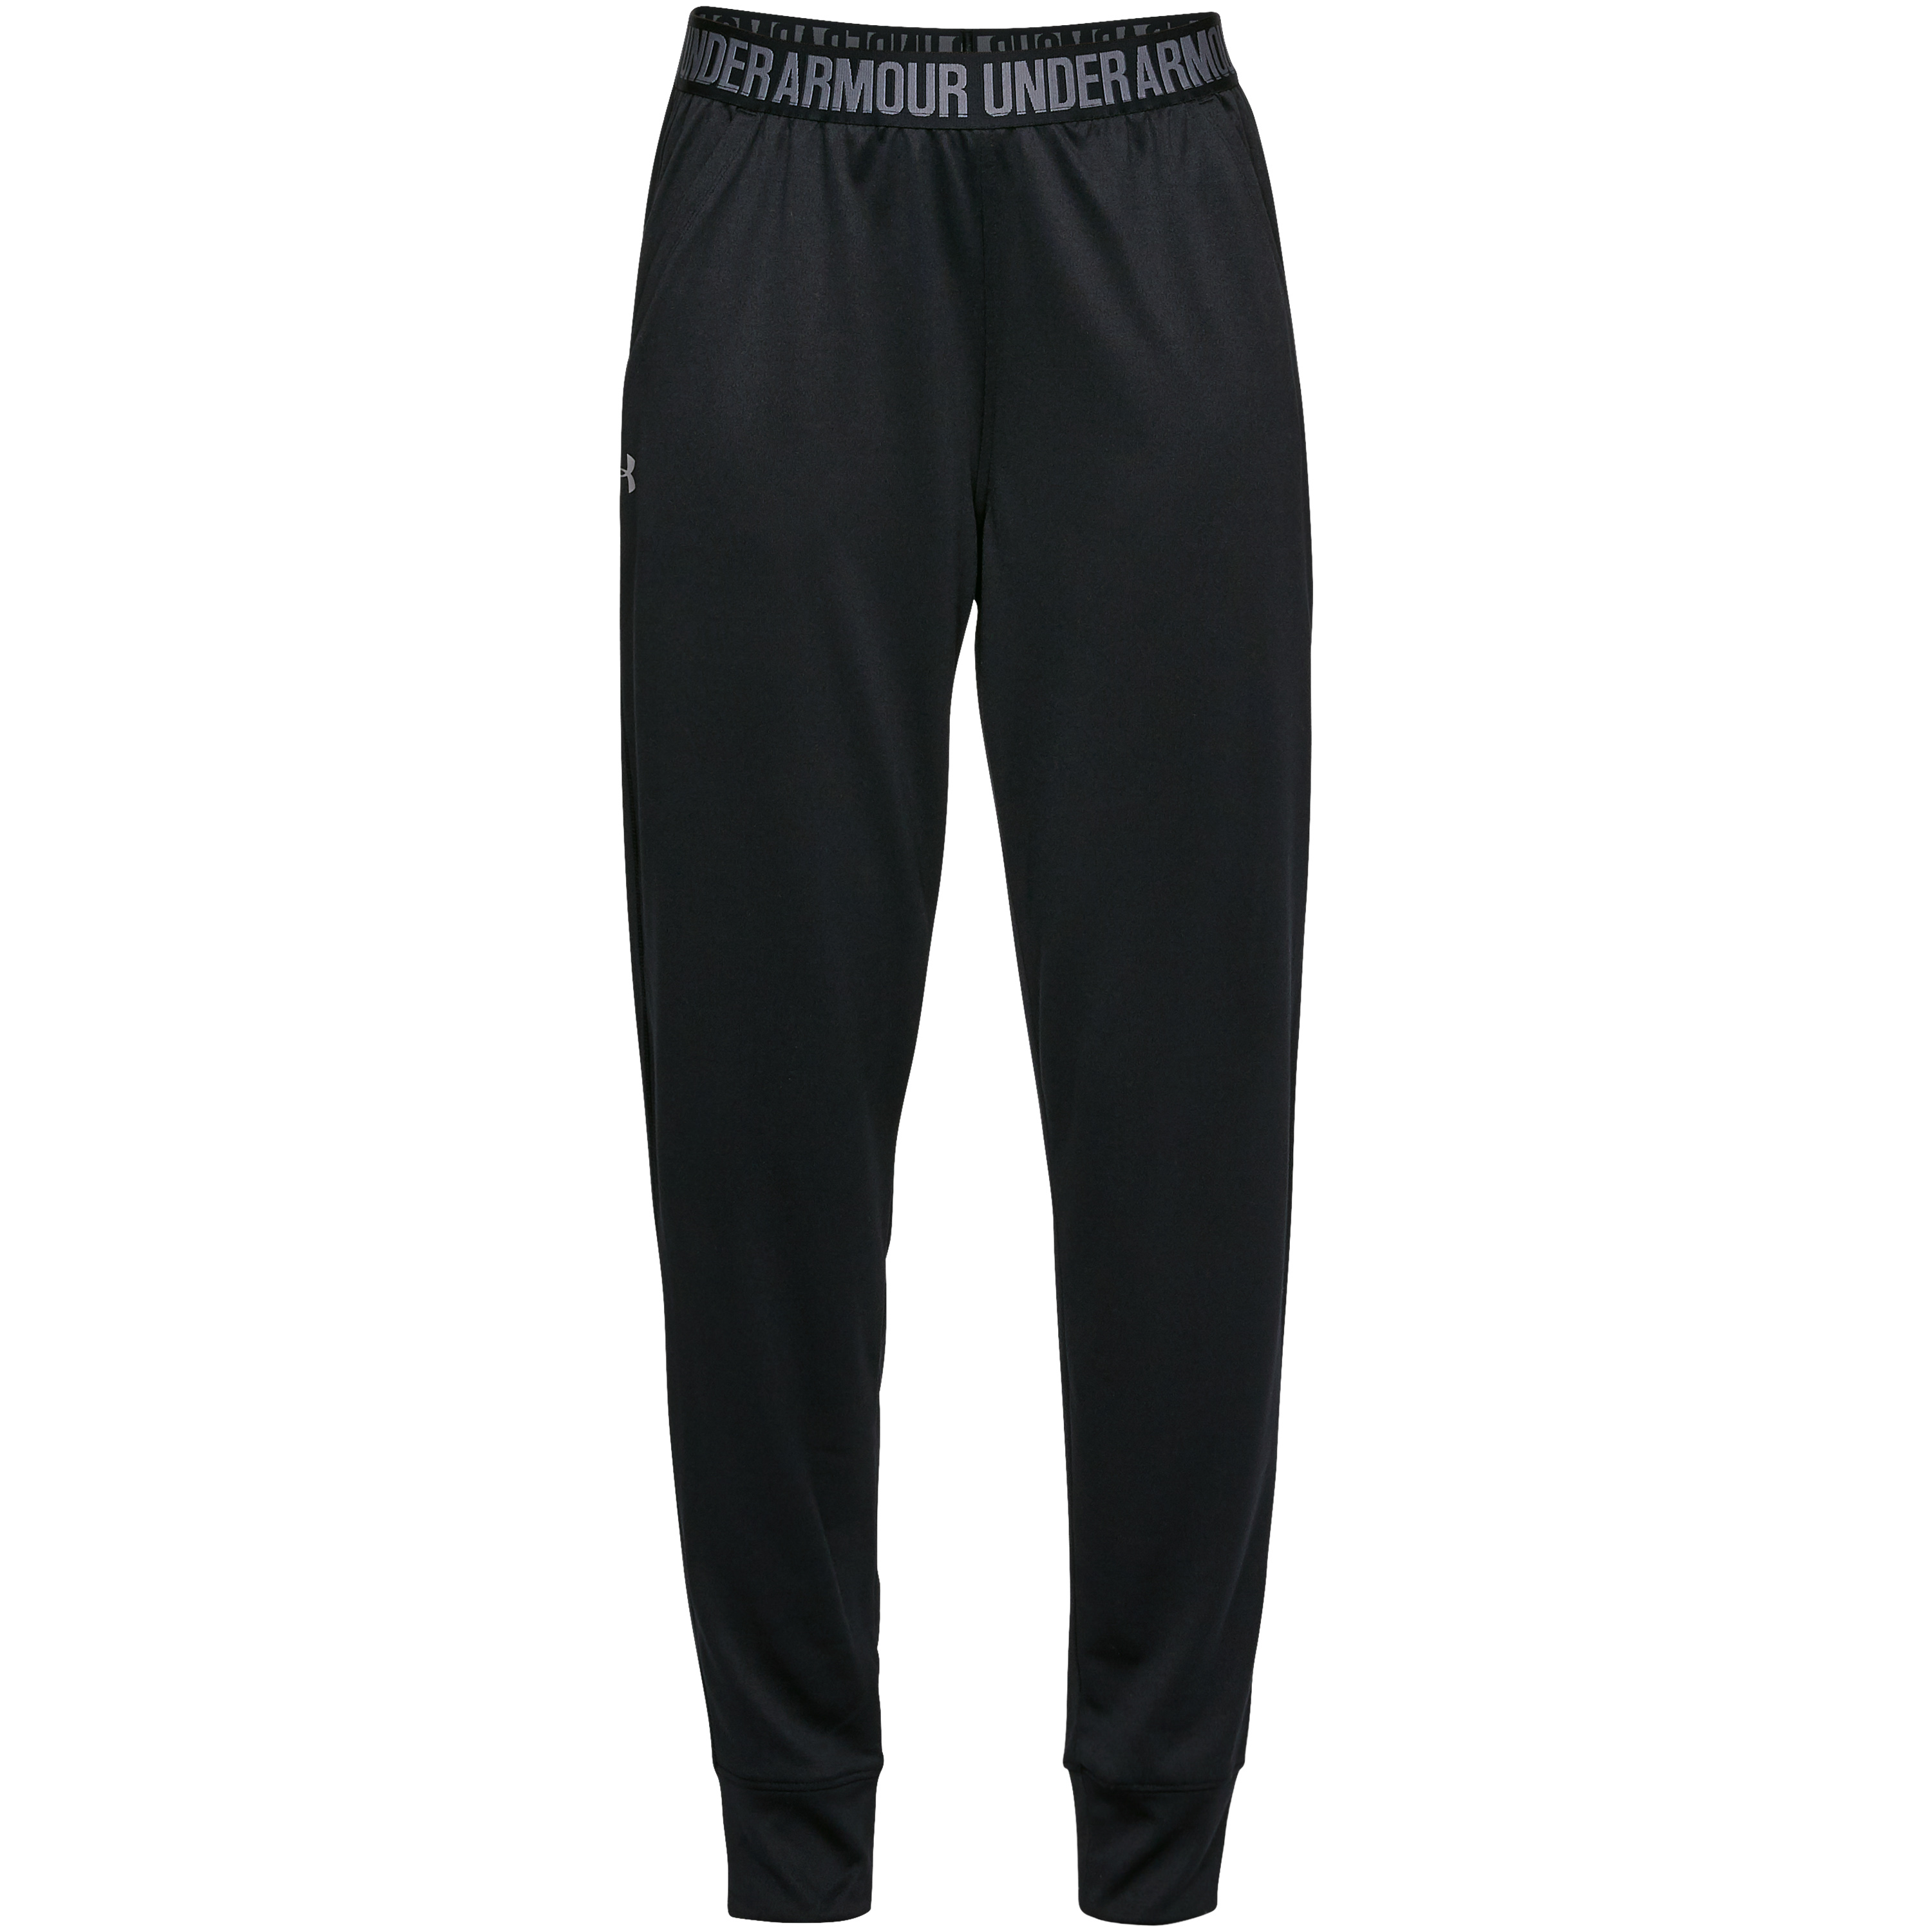 Under Armour Women Jogginghose Play Up Solid schwarz